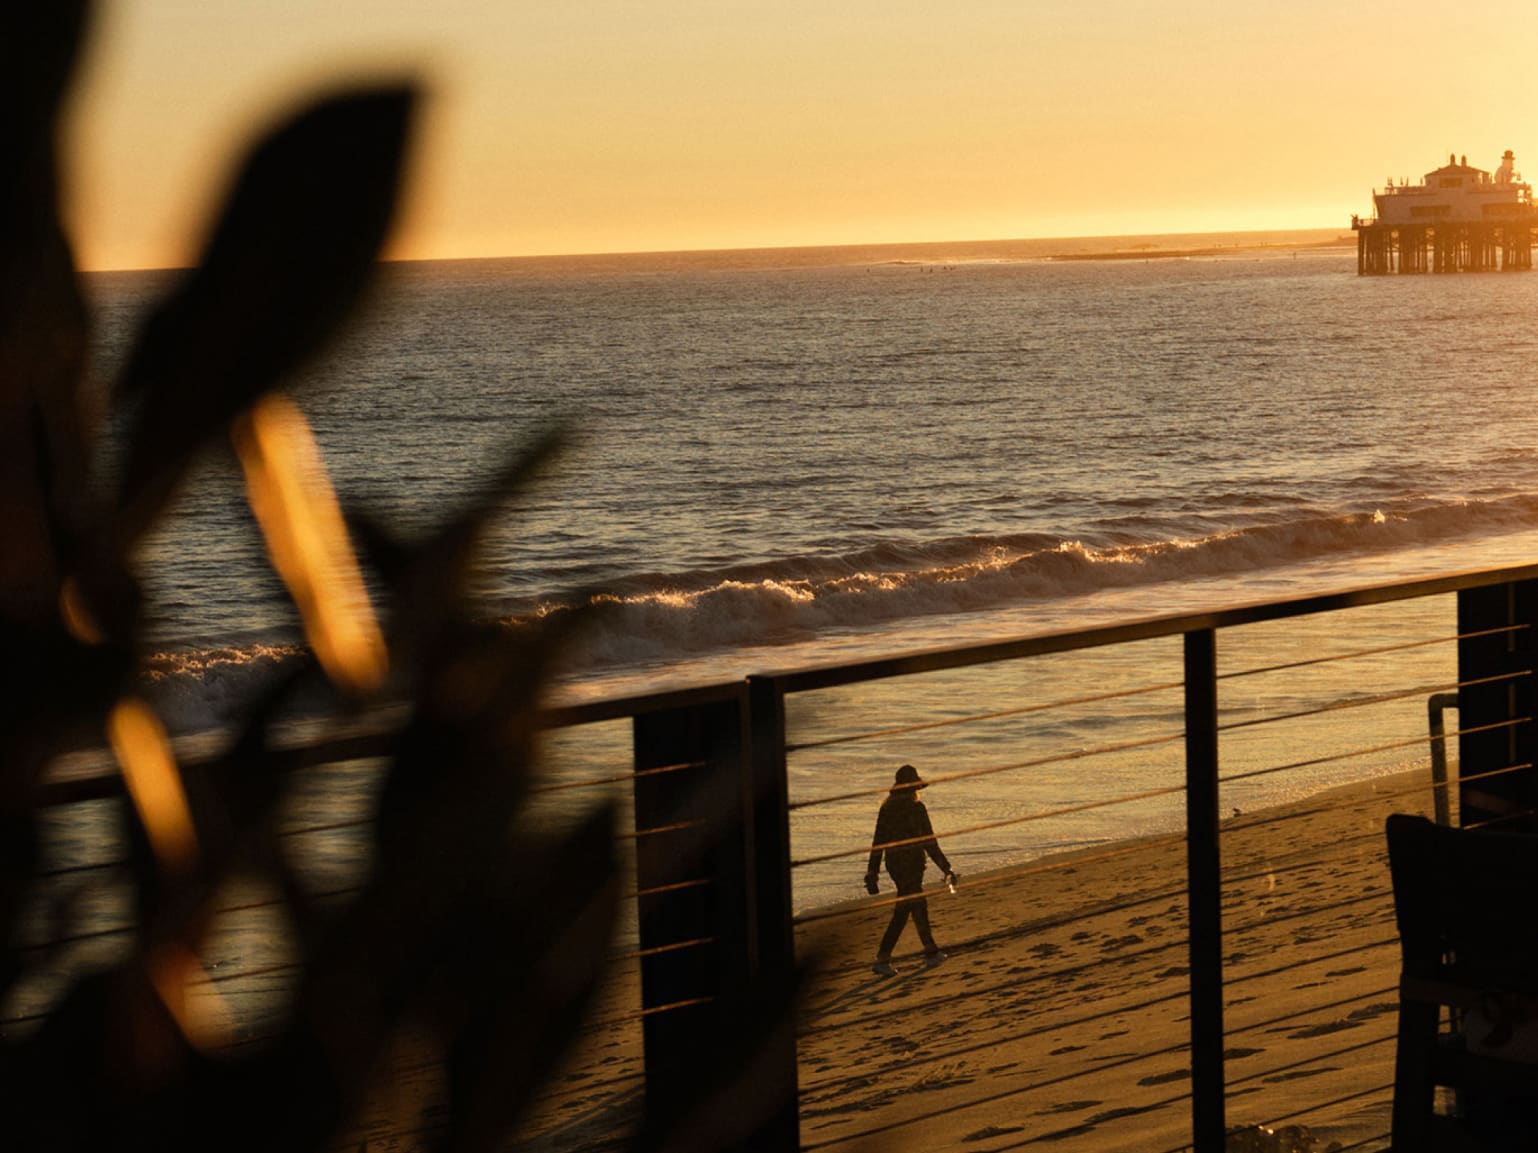 Looking down from a terrace at a person walking on a beach at sunset.